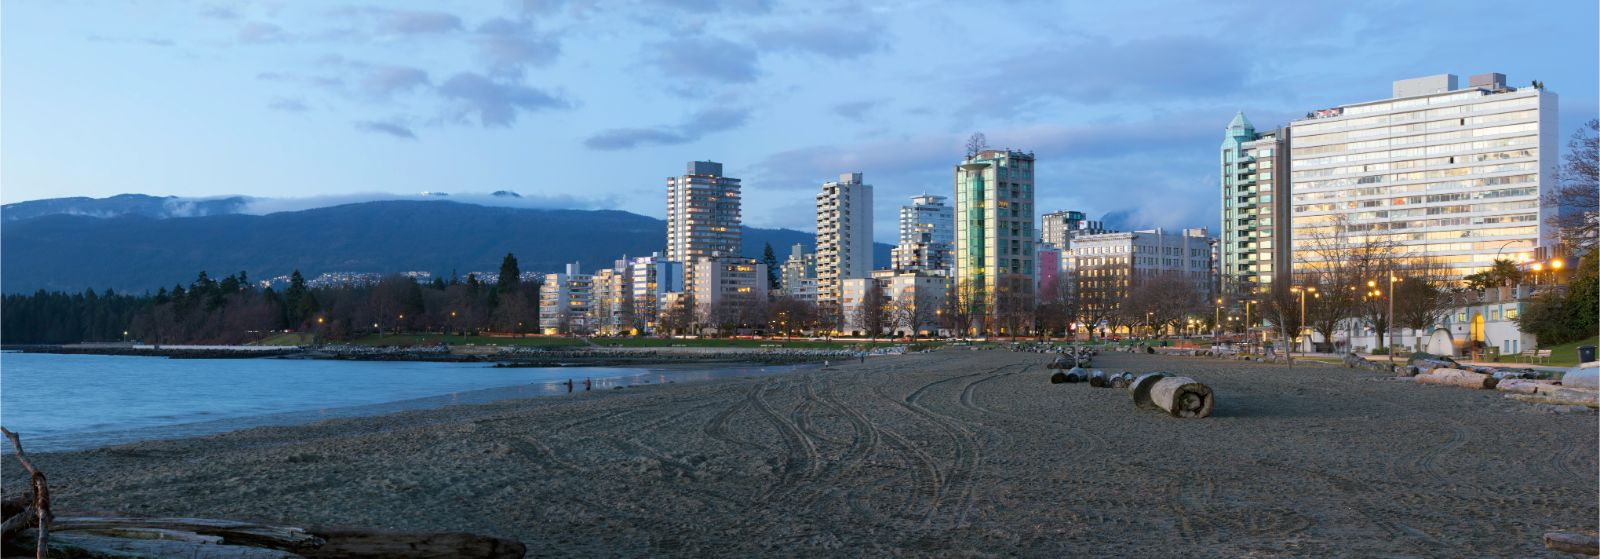 Experience Vancouver beaches